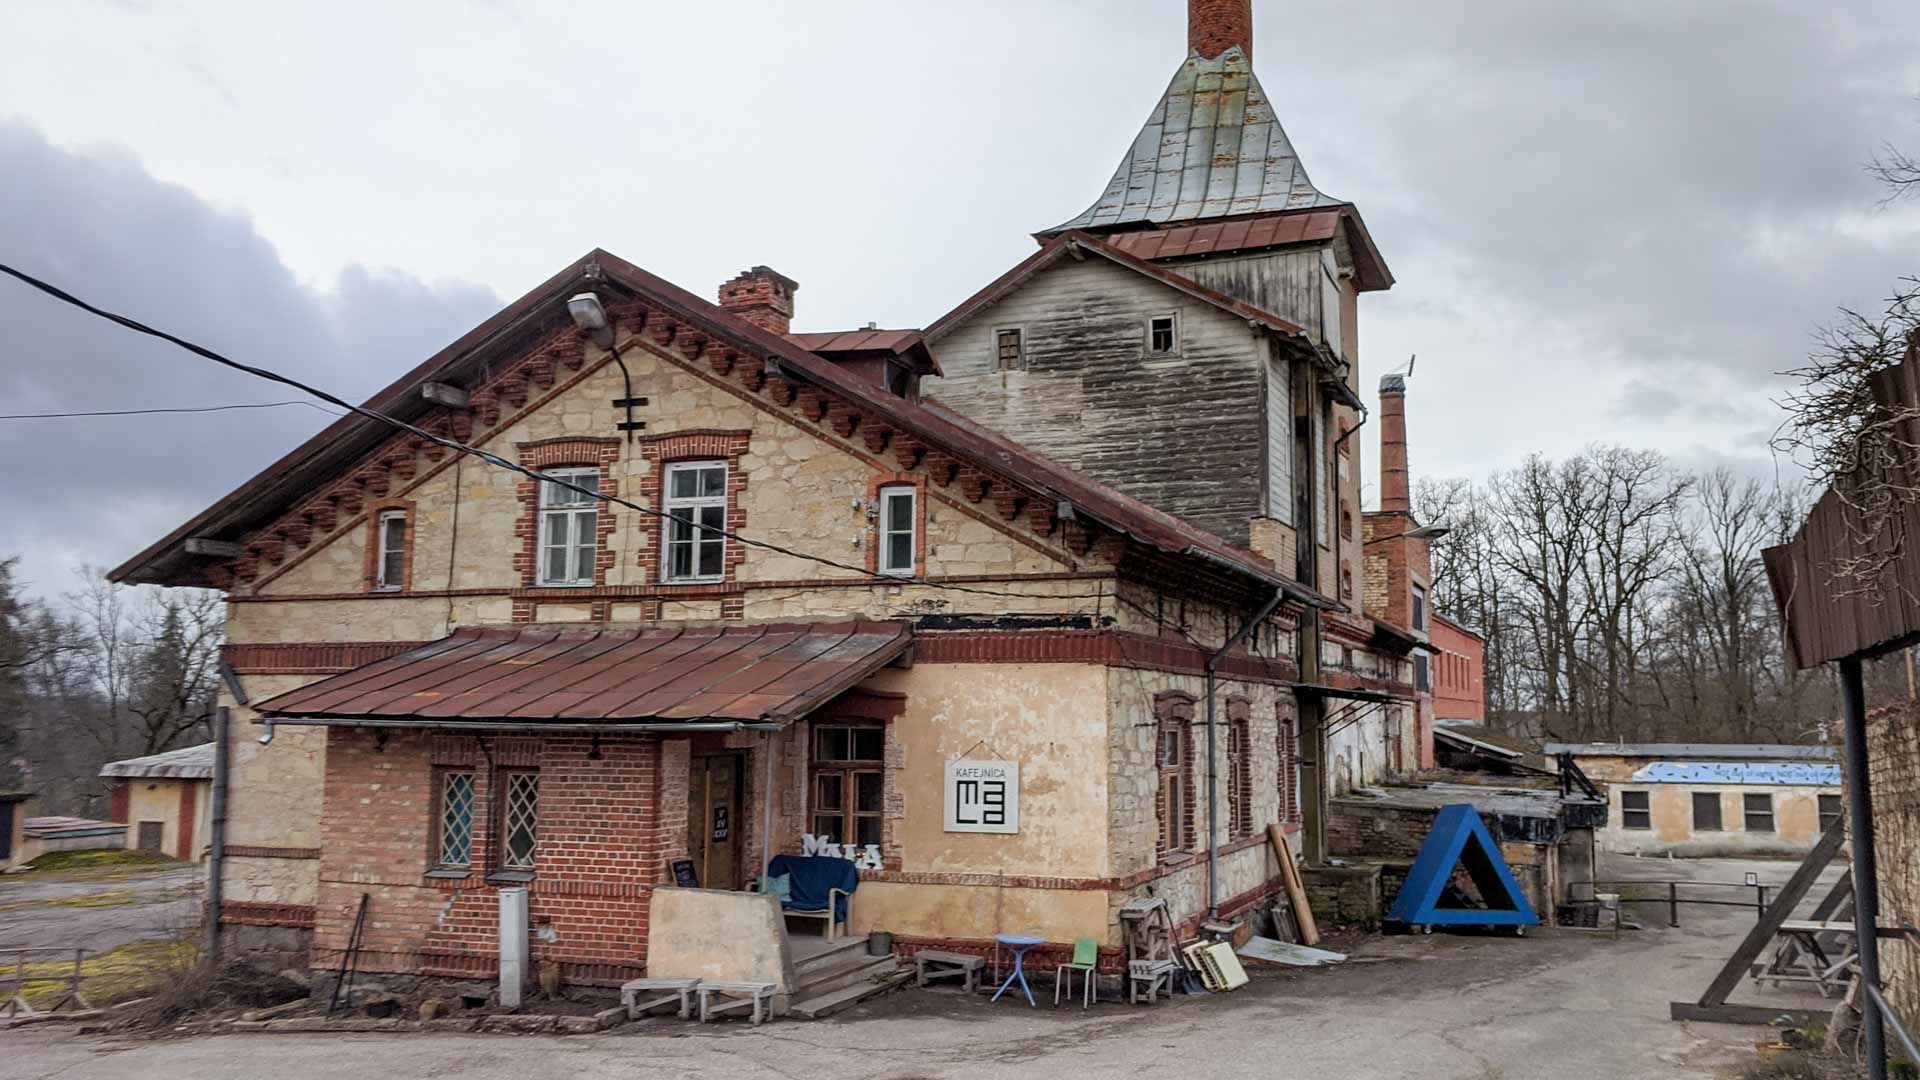 Brewery near the Old Castle of Cesis, Latvia